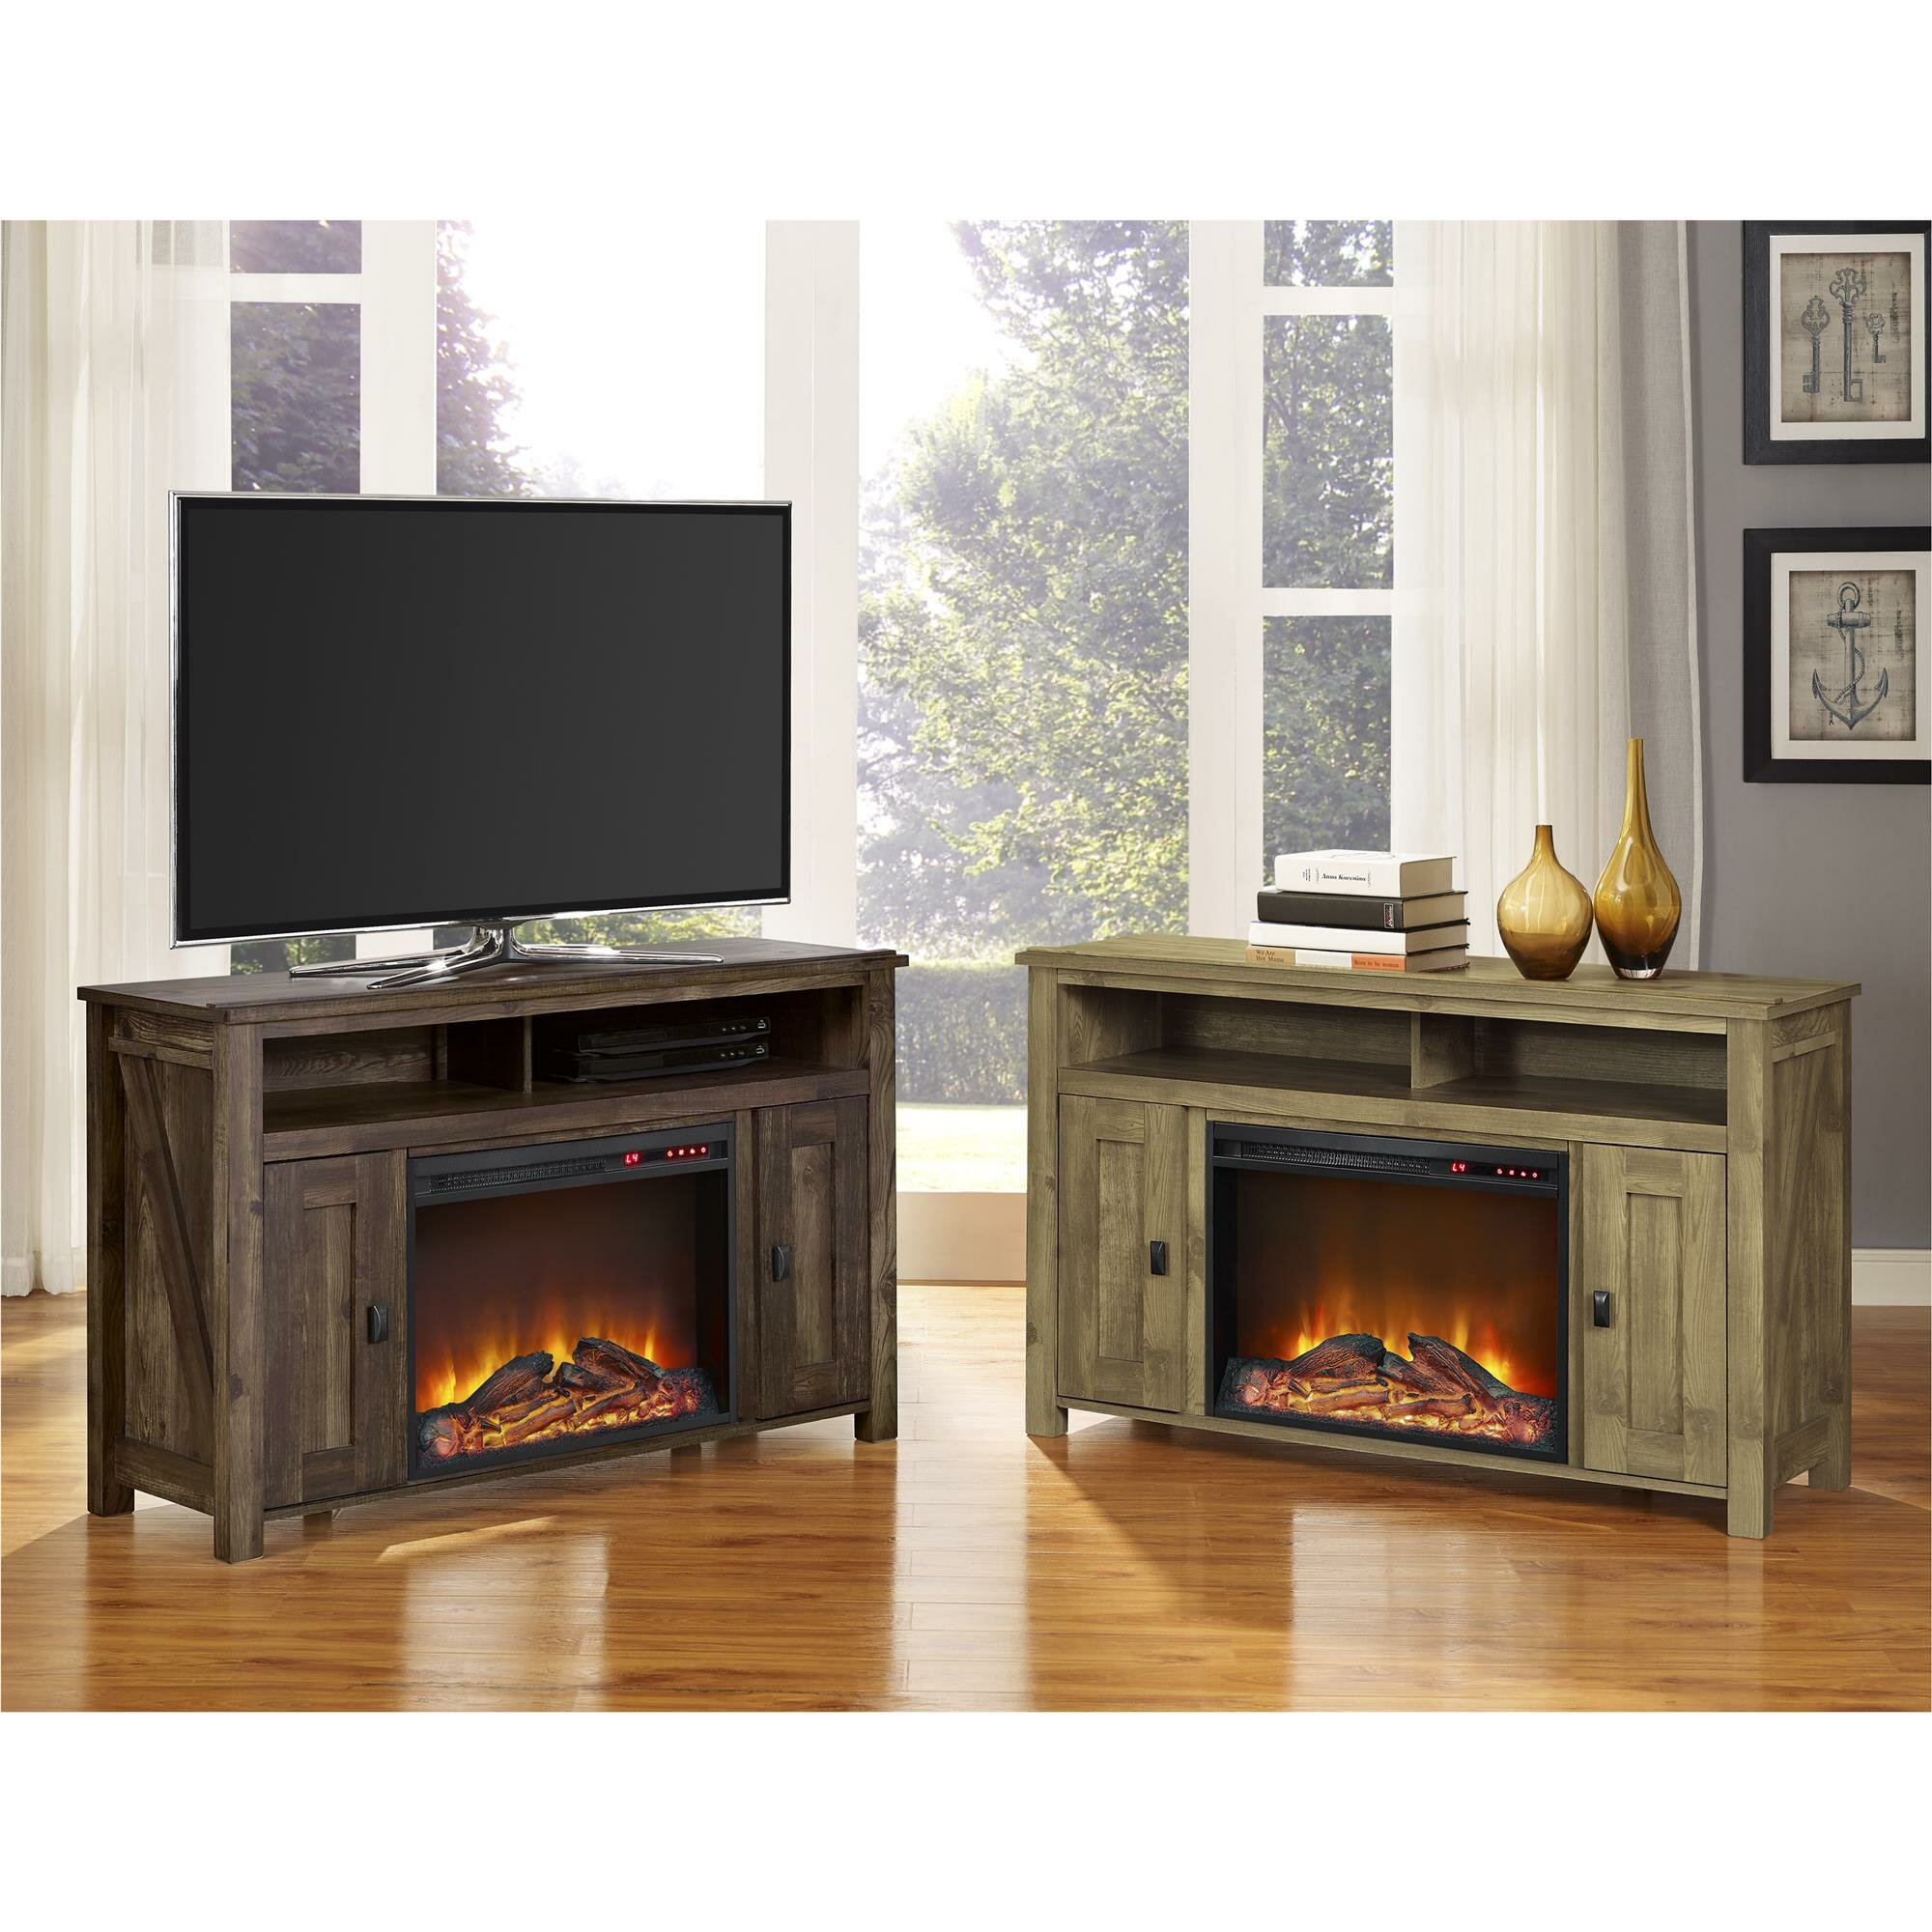 August Grove Gilby Tv Stand With Electric Fireplace Reviews Wayfair